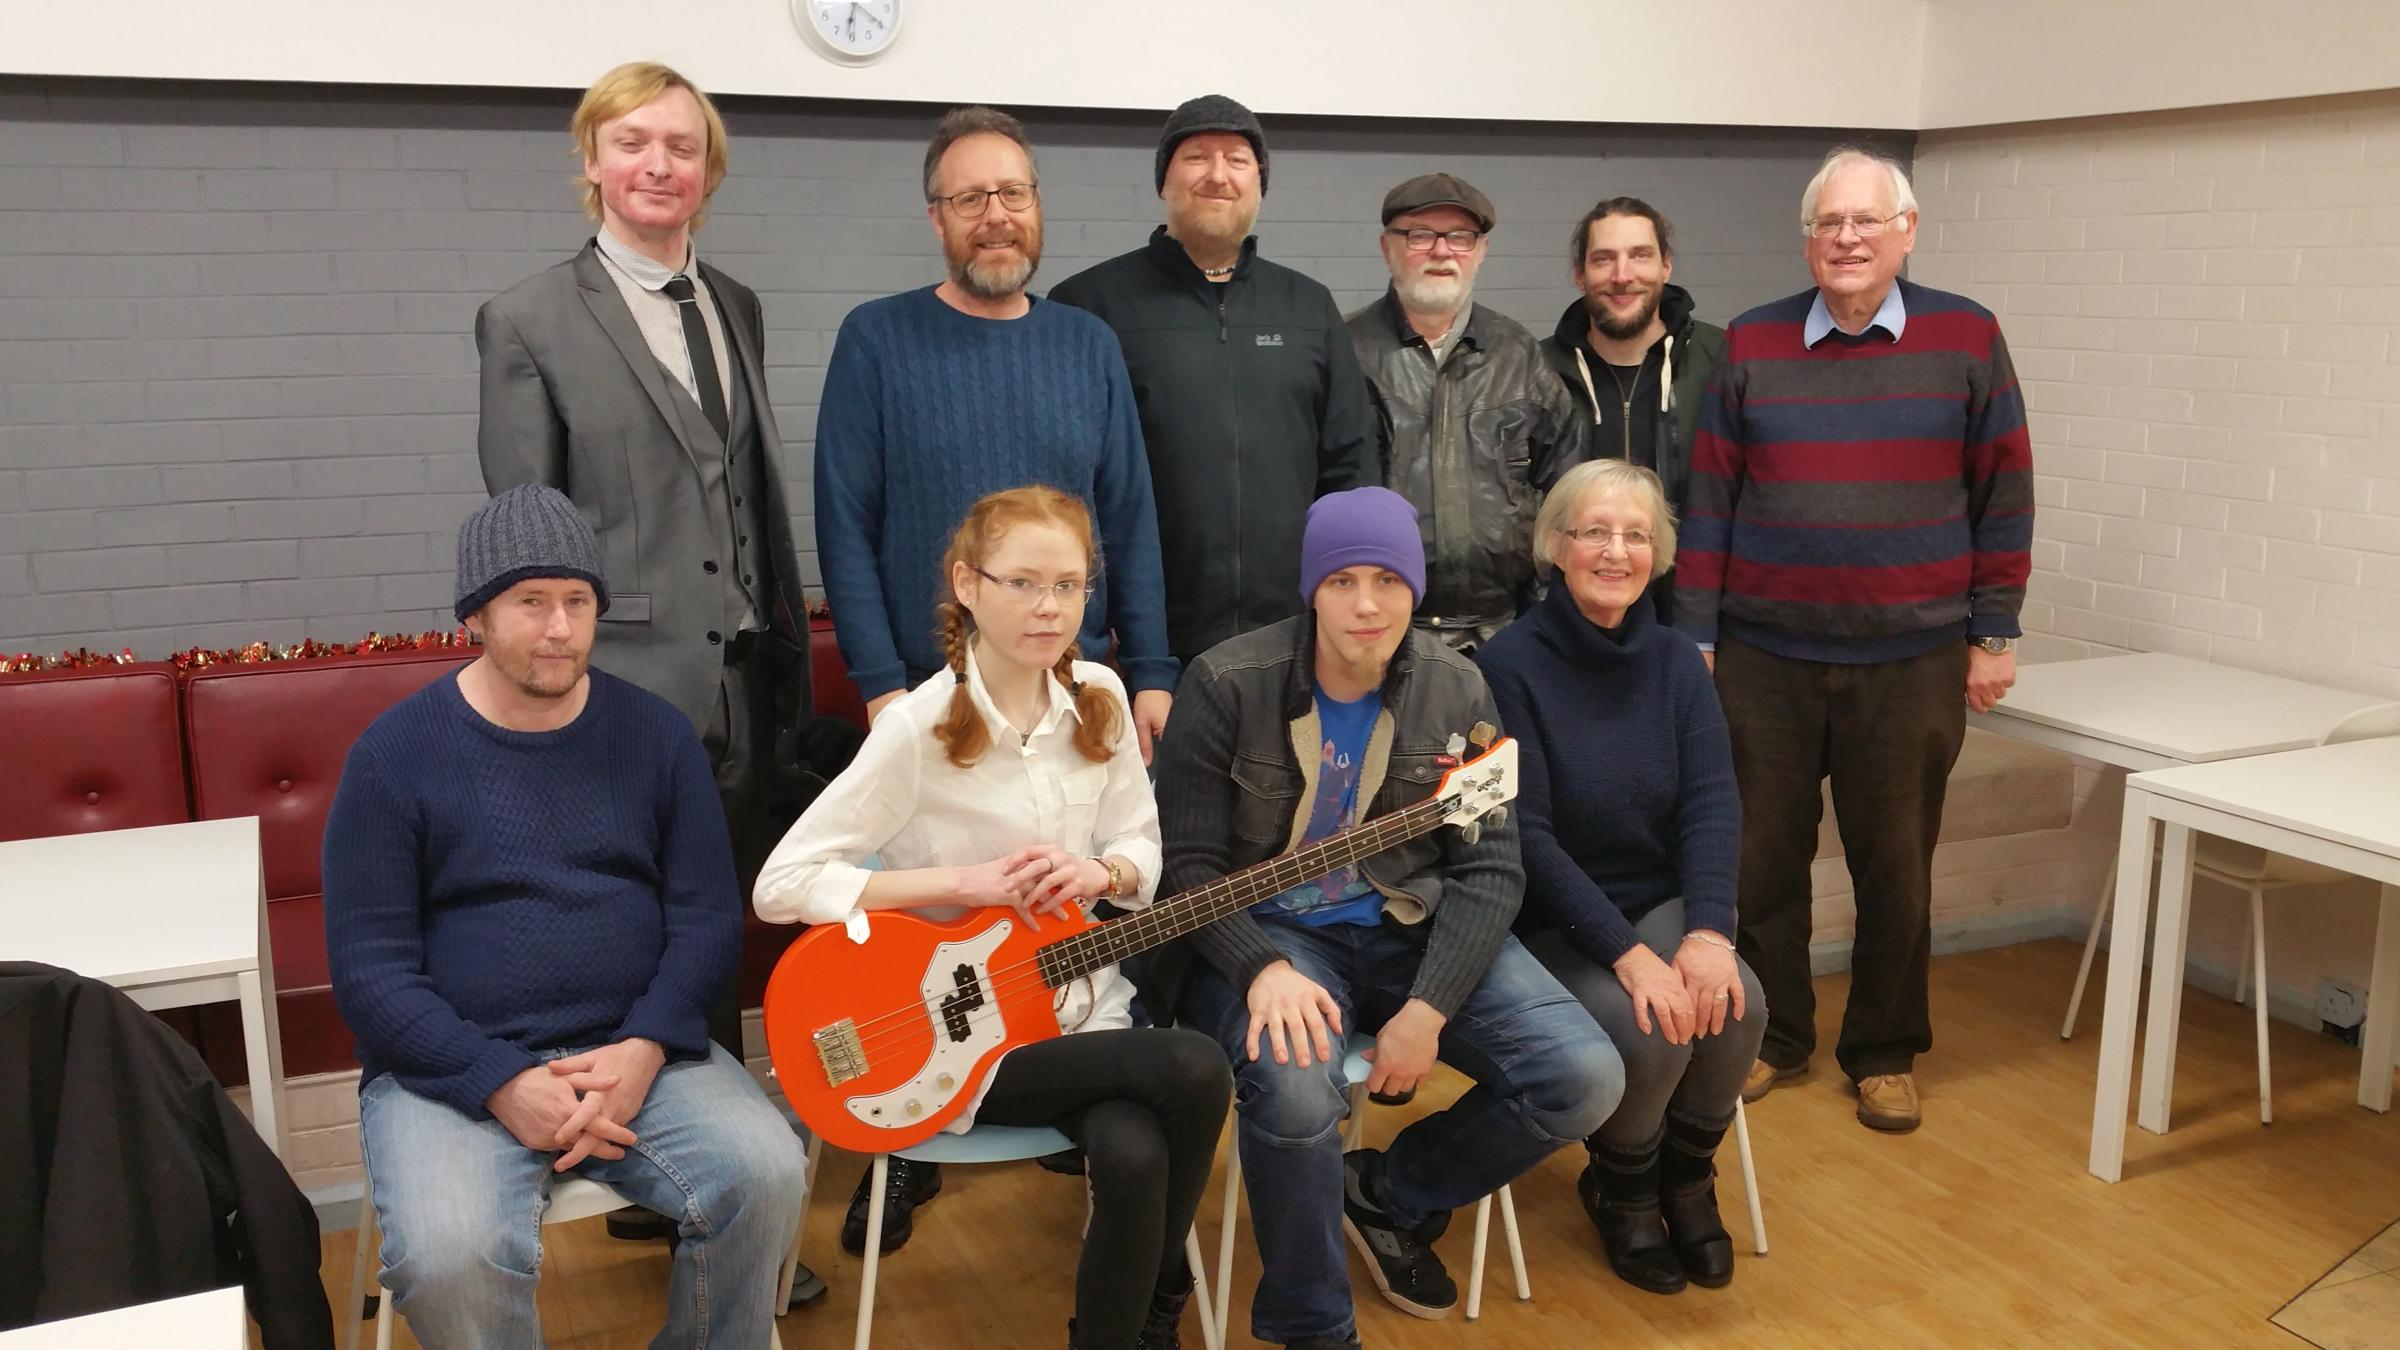 'Battle of the bands' call to Flintshire schools